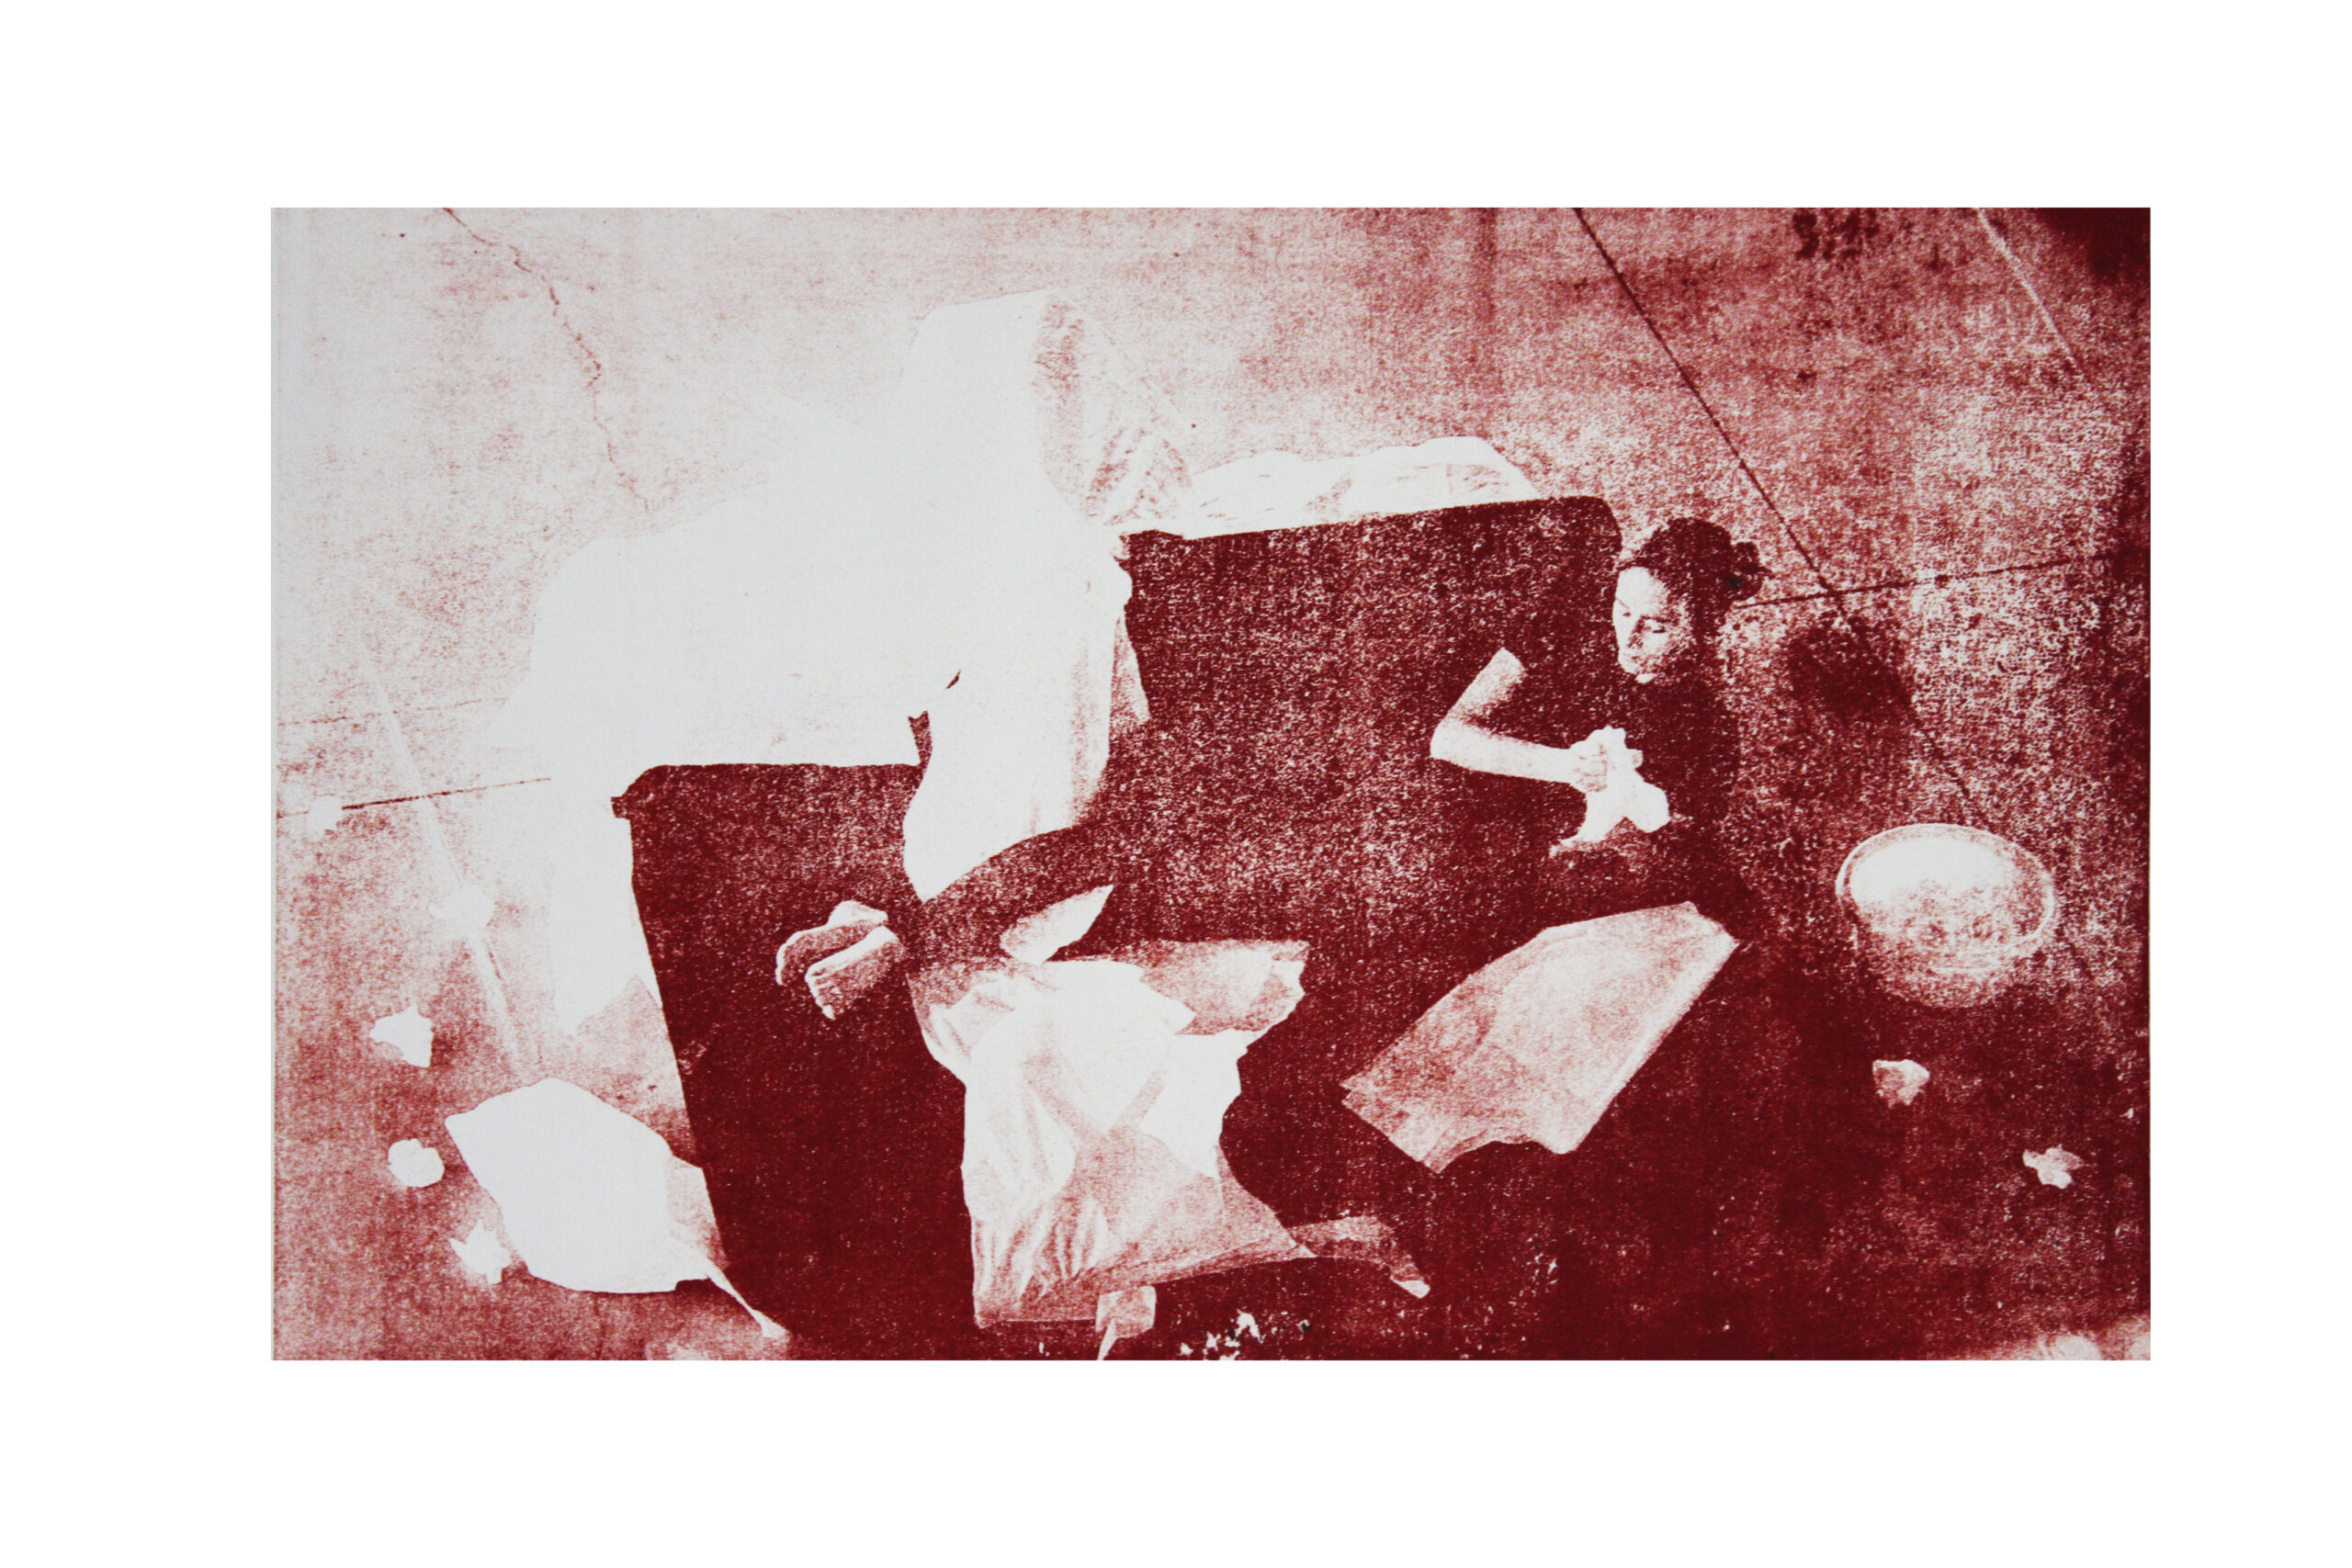 """""""Never seen performance"""", Gum prints on paper, 40 x 50 cm, 2020 - Francesca Mussi - courtesy of the artist"""